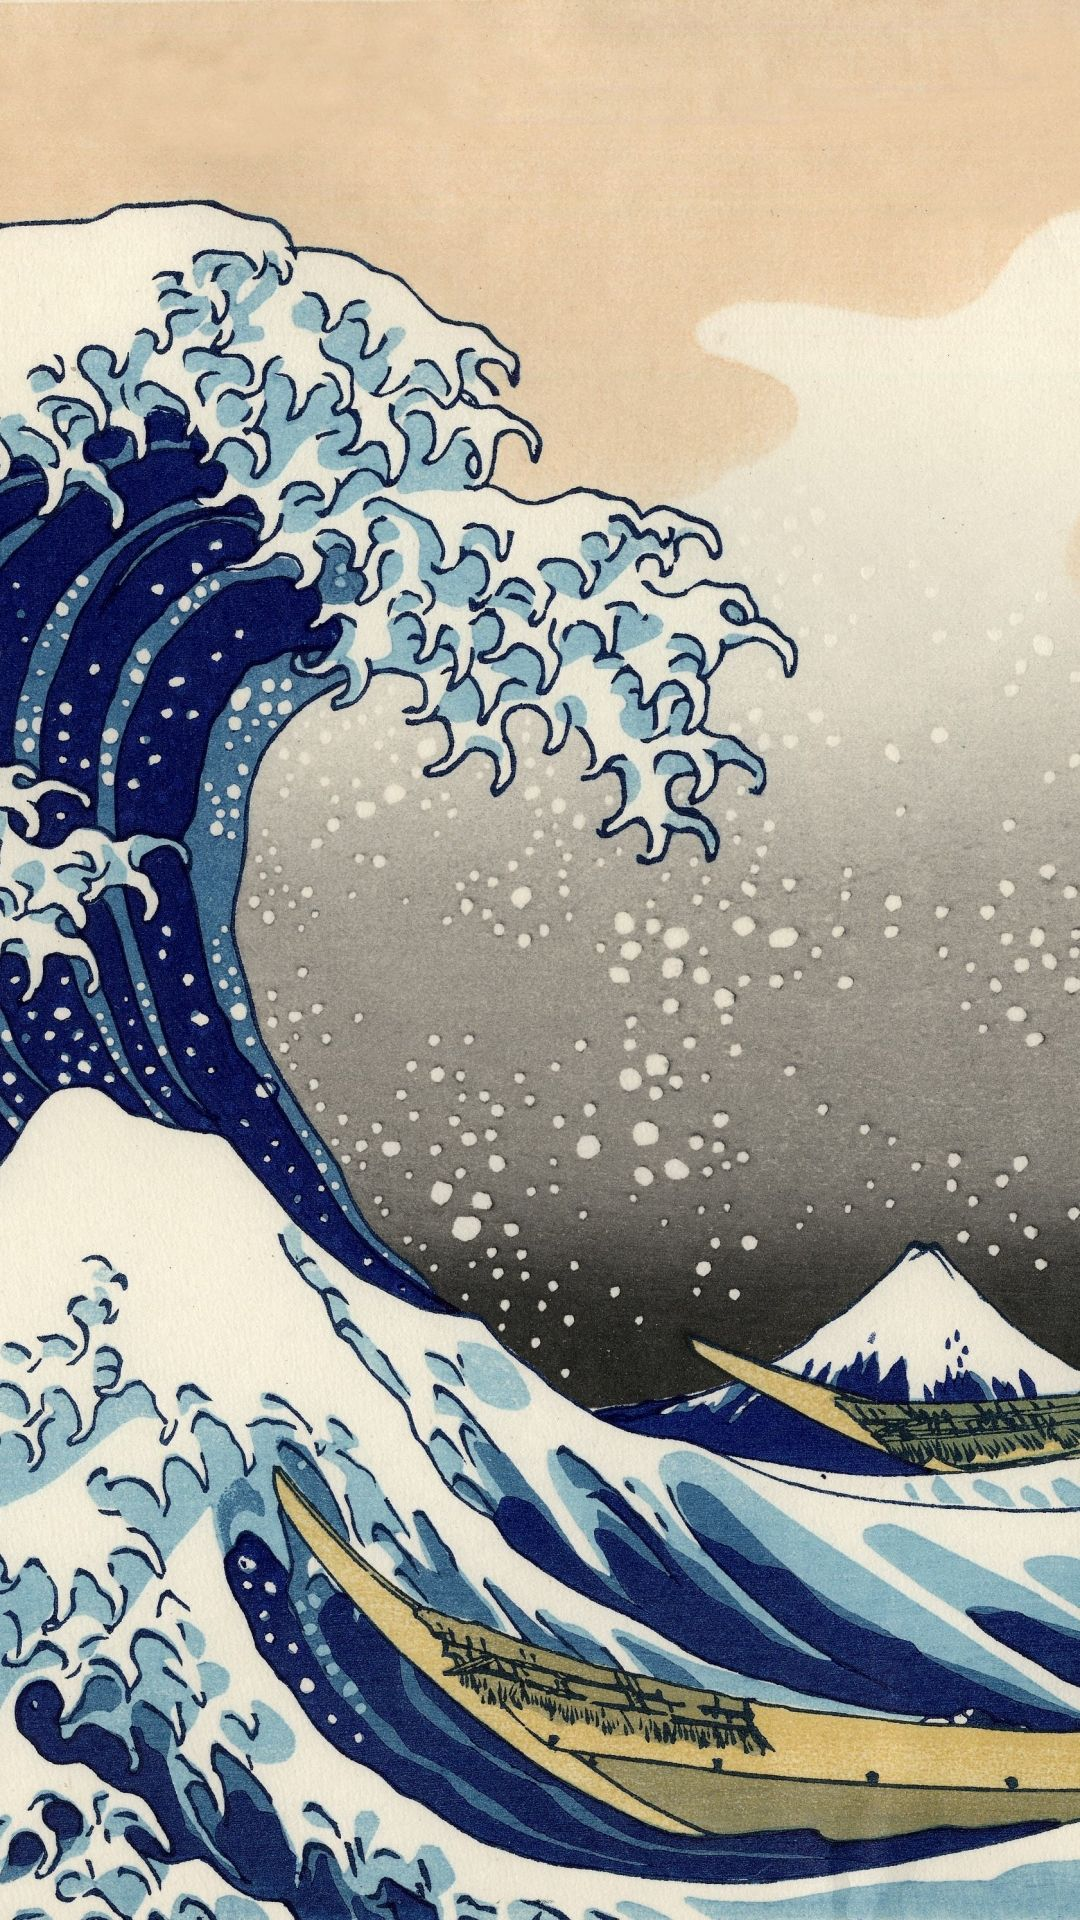 Artistic The Great Wave Off Kanagawa Wave Japanese